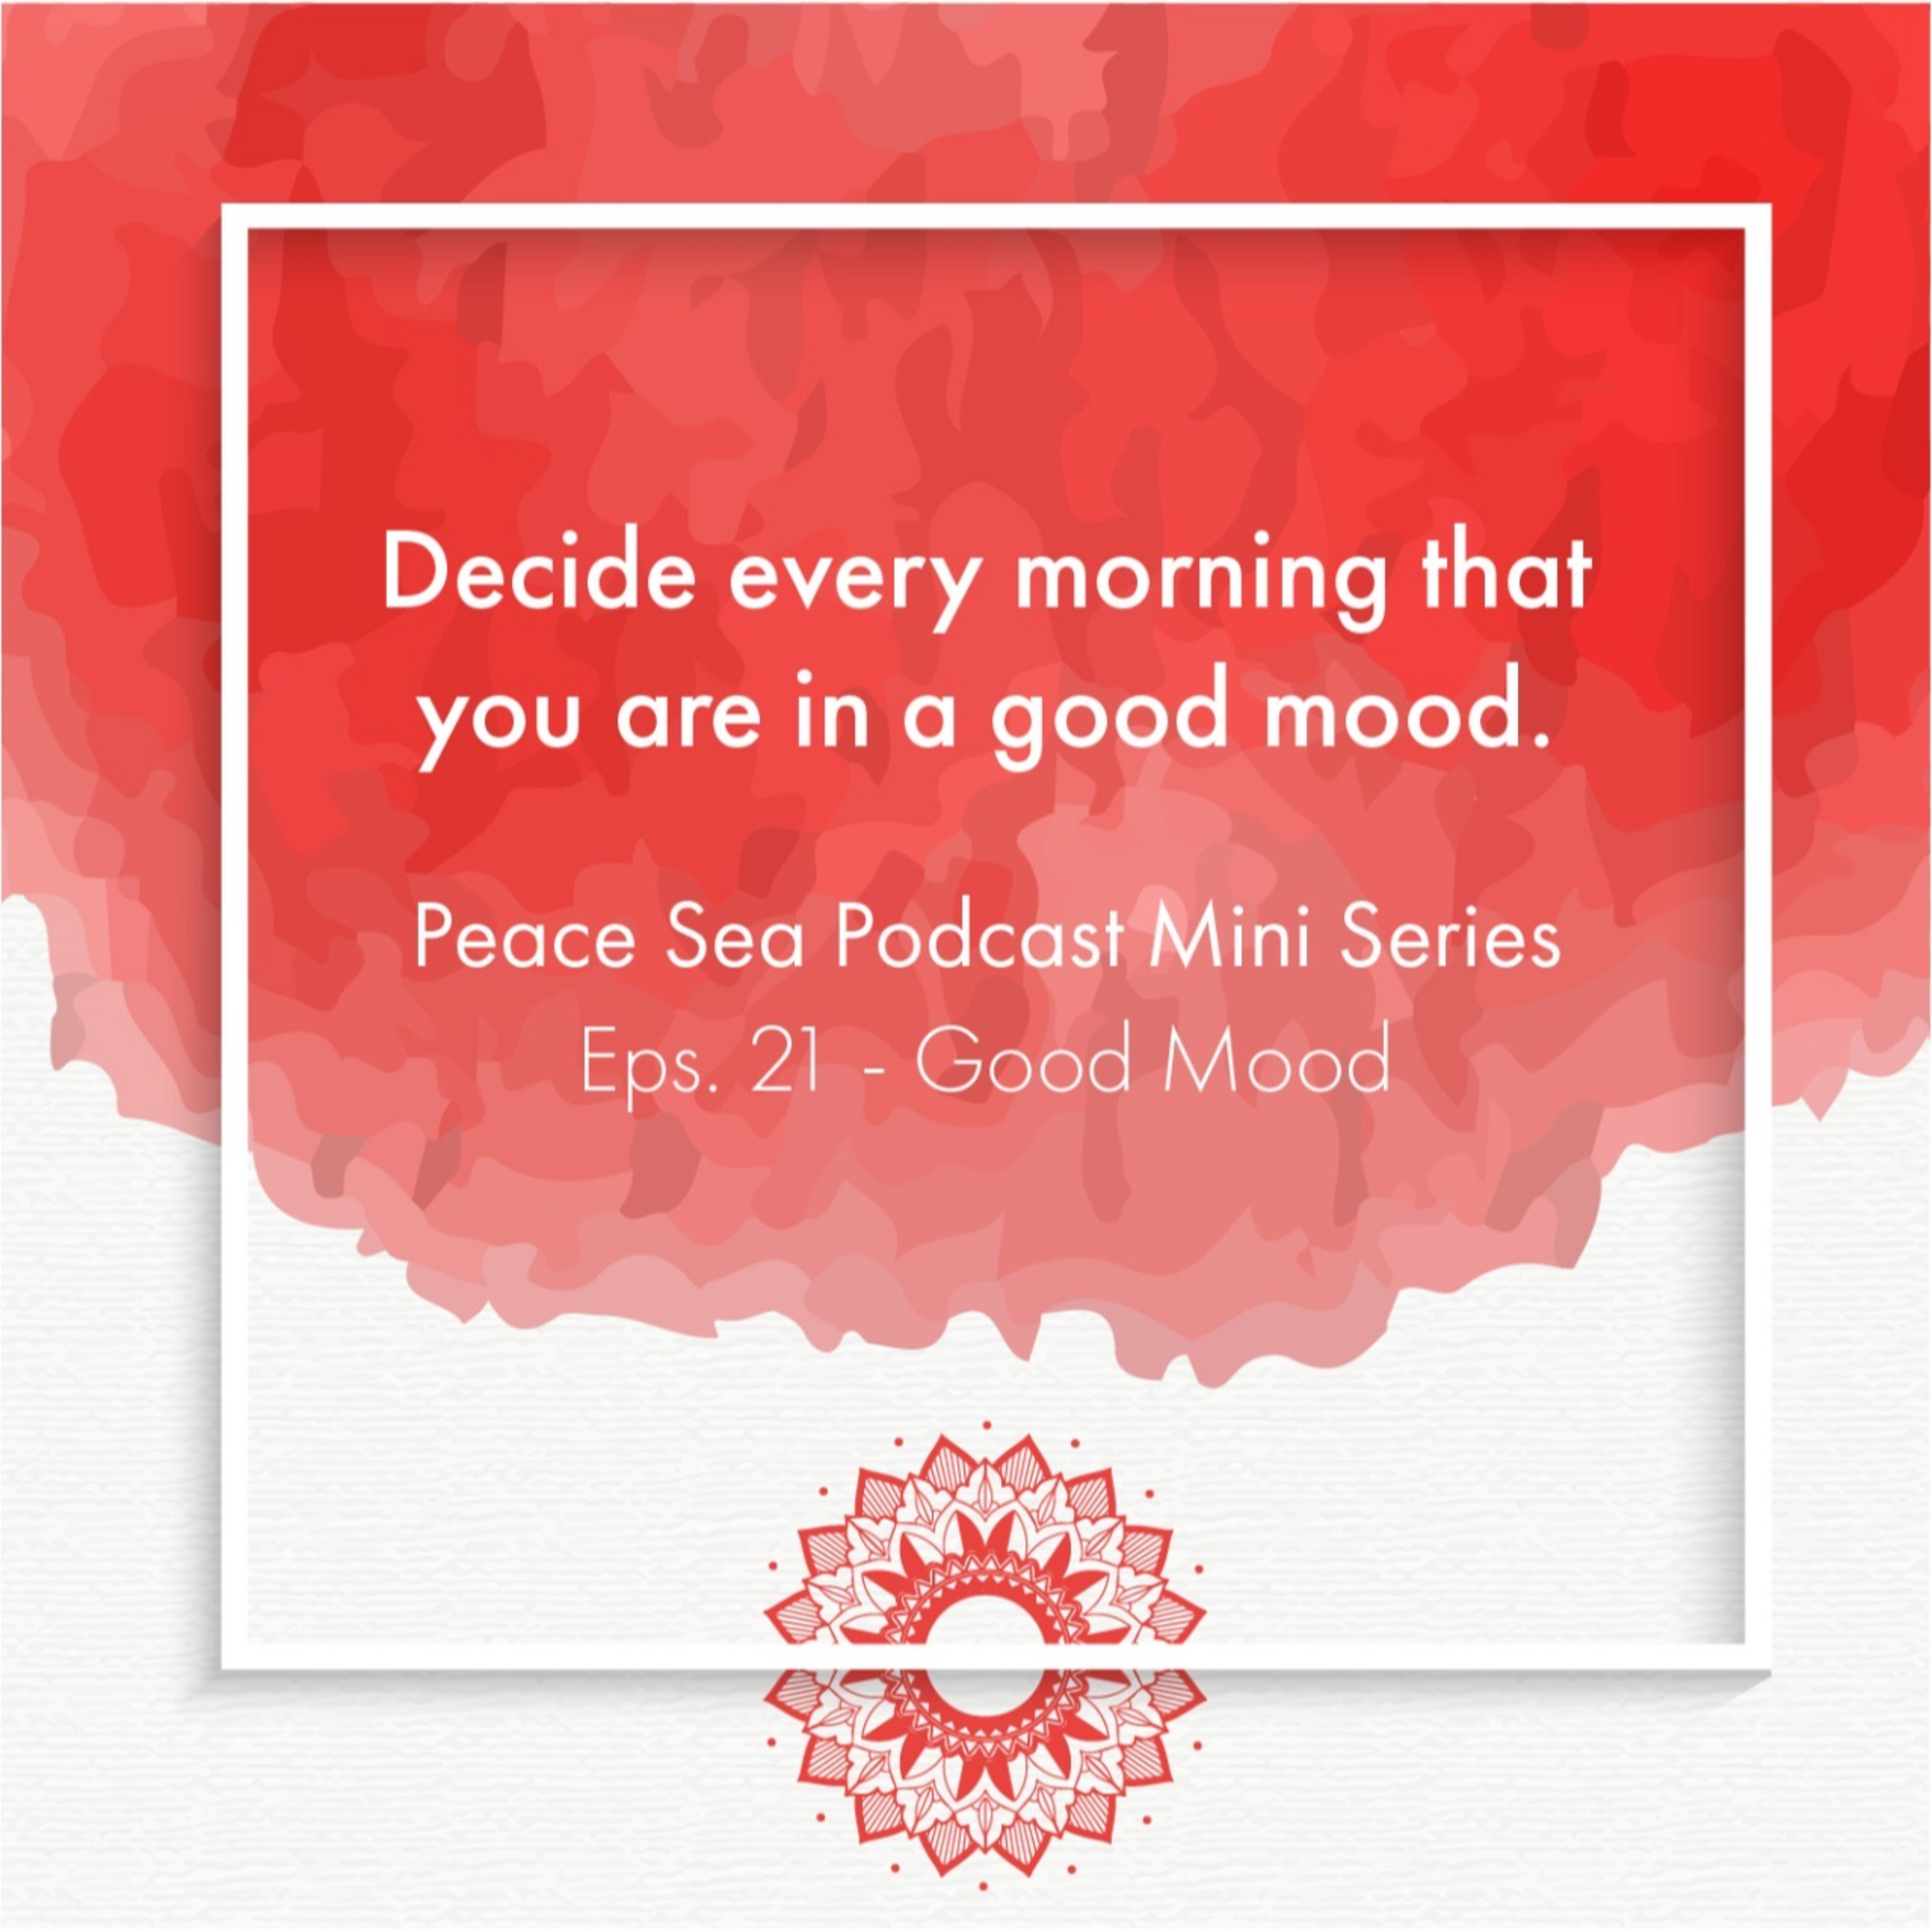 Ep. 21. Mini Series - Good Mood